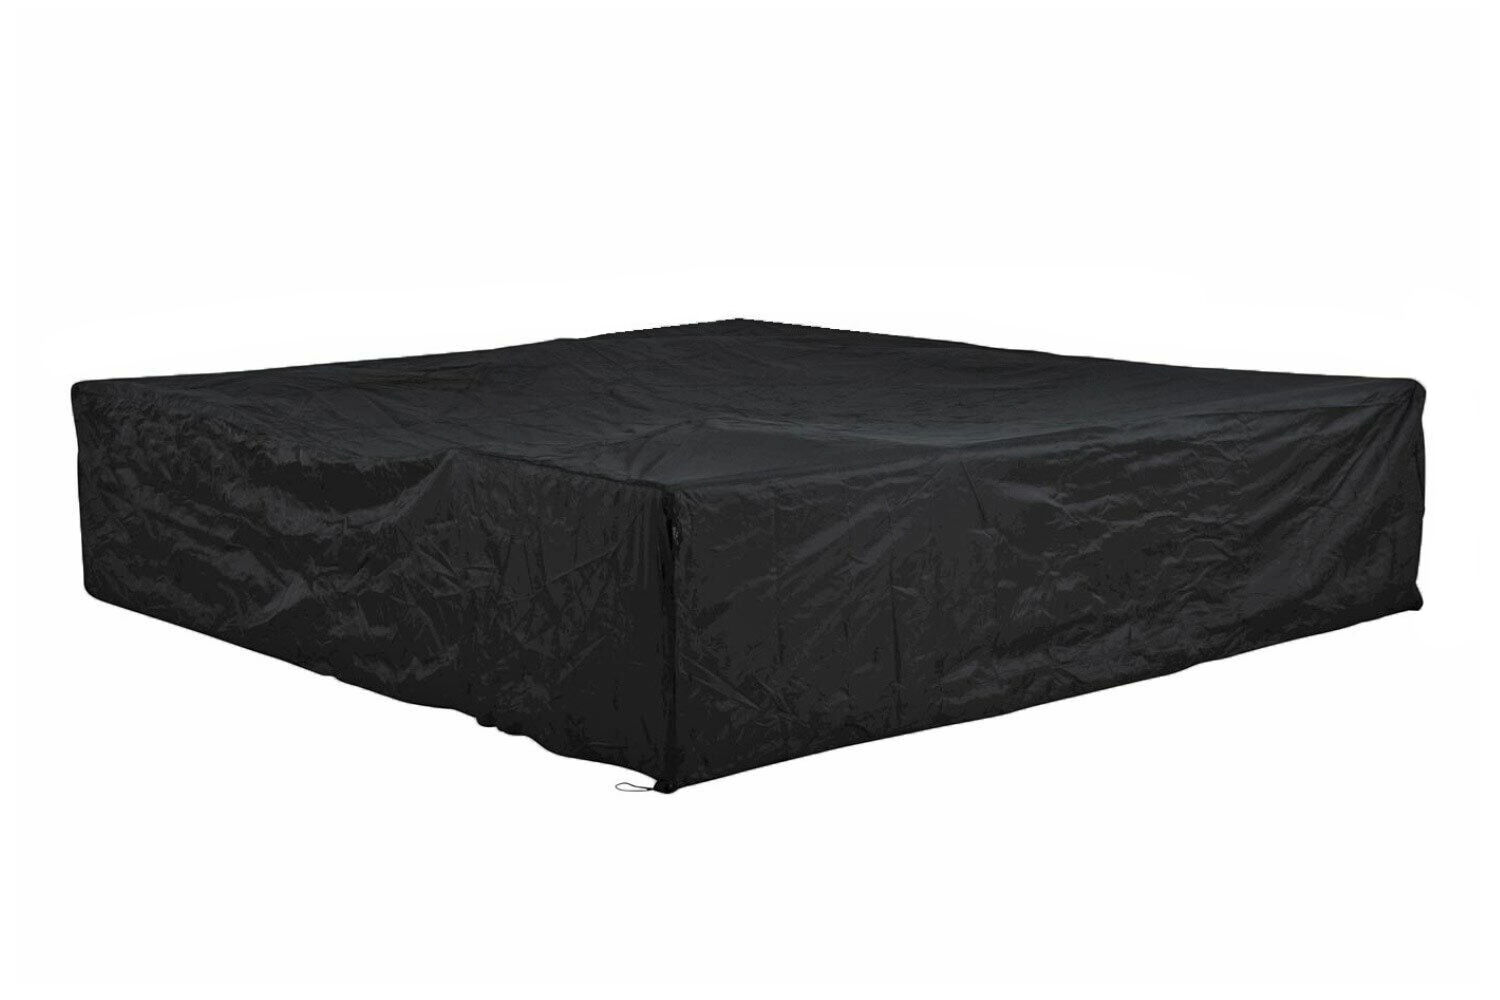 Outdoor Cover loungesethoes 400 x 300 x (h) 70 cm